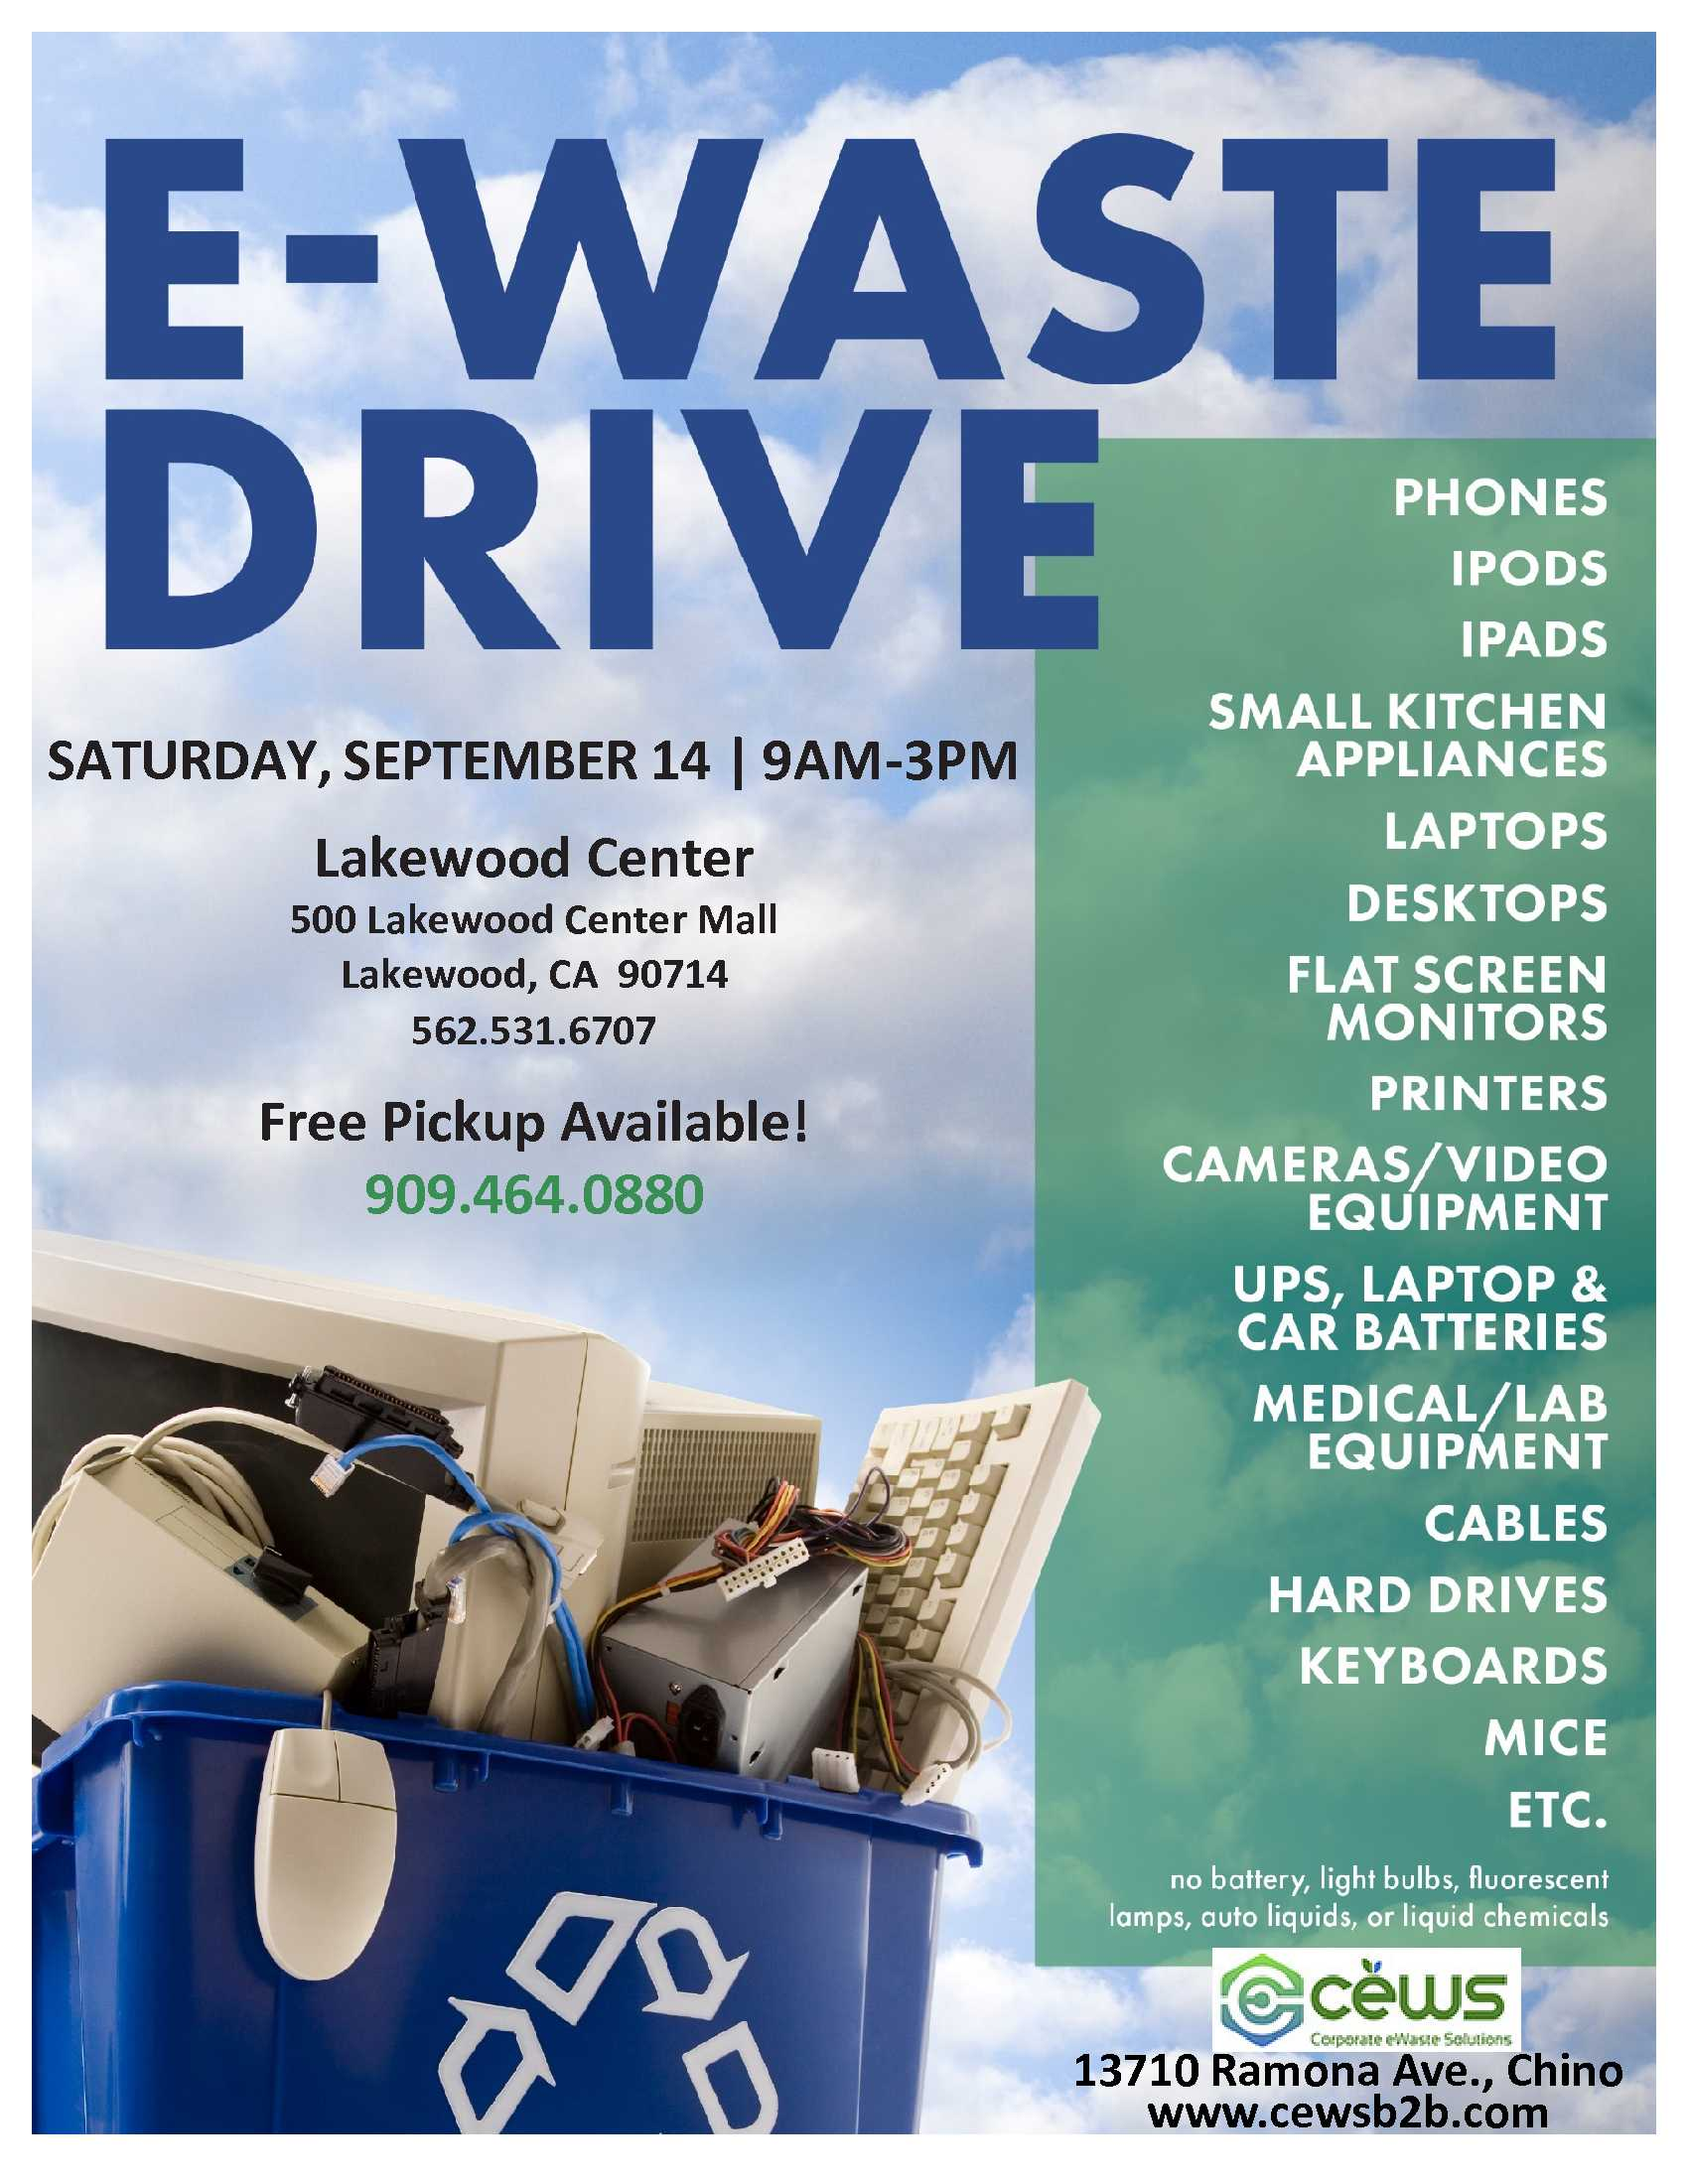 E-Waste Event on September 14, 2019 9am to 3pm at Lakewood Center, 500 Lakewood Center Mall, Lakewood, CA 90713. Free Pickup: 909.464.0880  Contact: www.cewsb2b.com